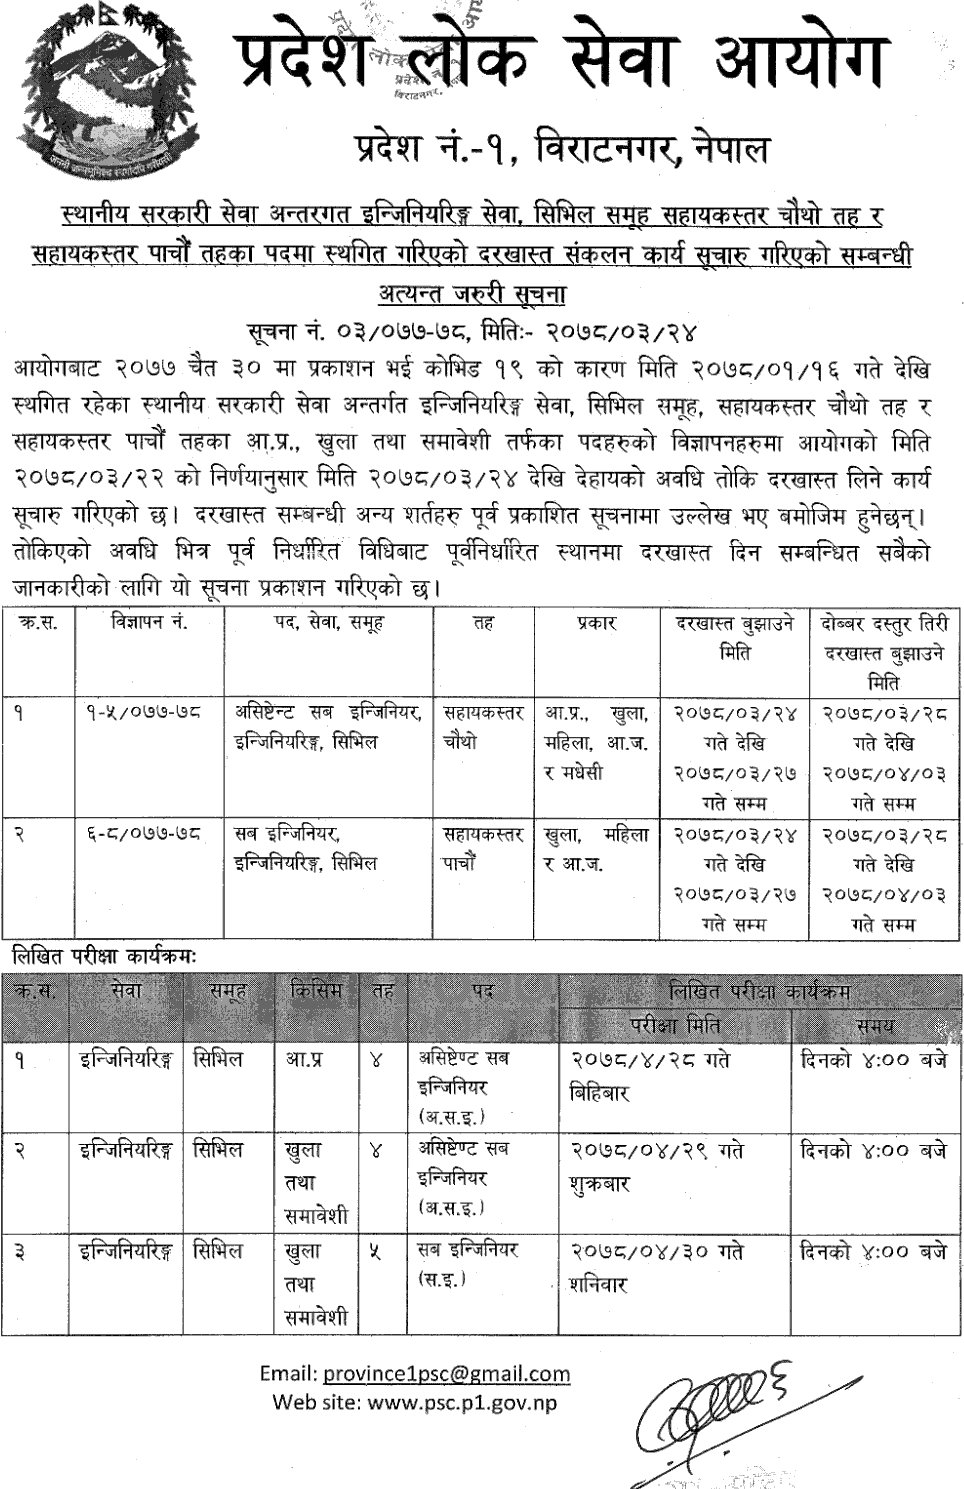 Province-Public-Service-Commission-Province-1-Vacancy-and-Exam-Schedule-of-4th-and-5th-Level-Assistant-(Engineering-Service).png